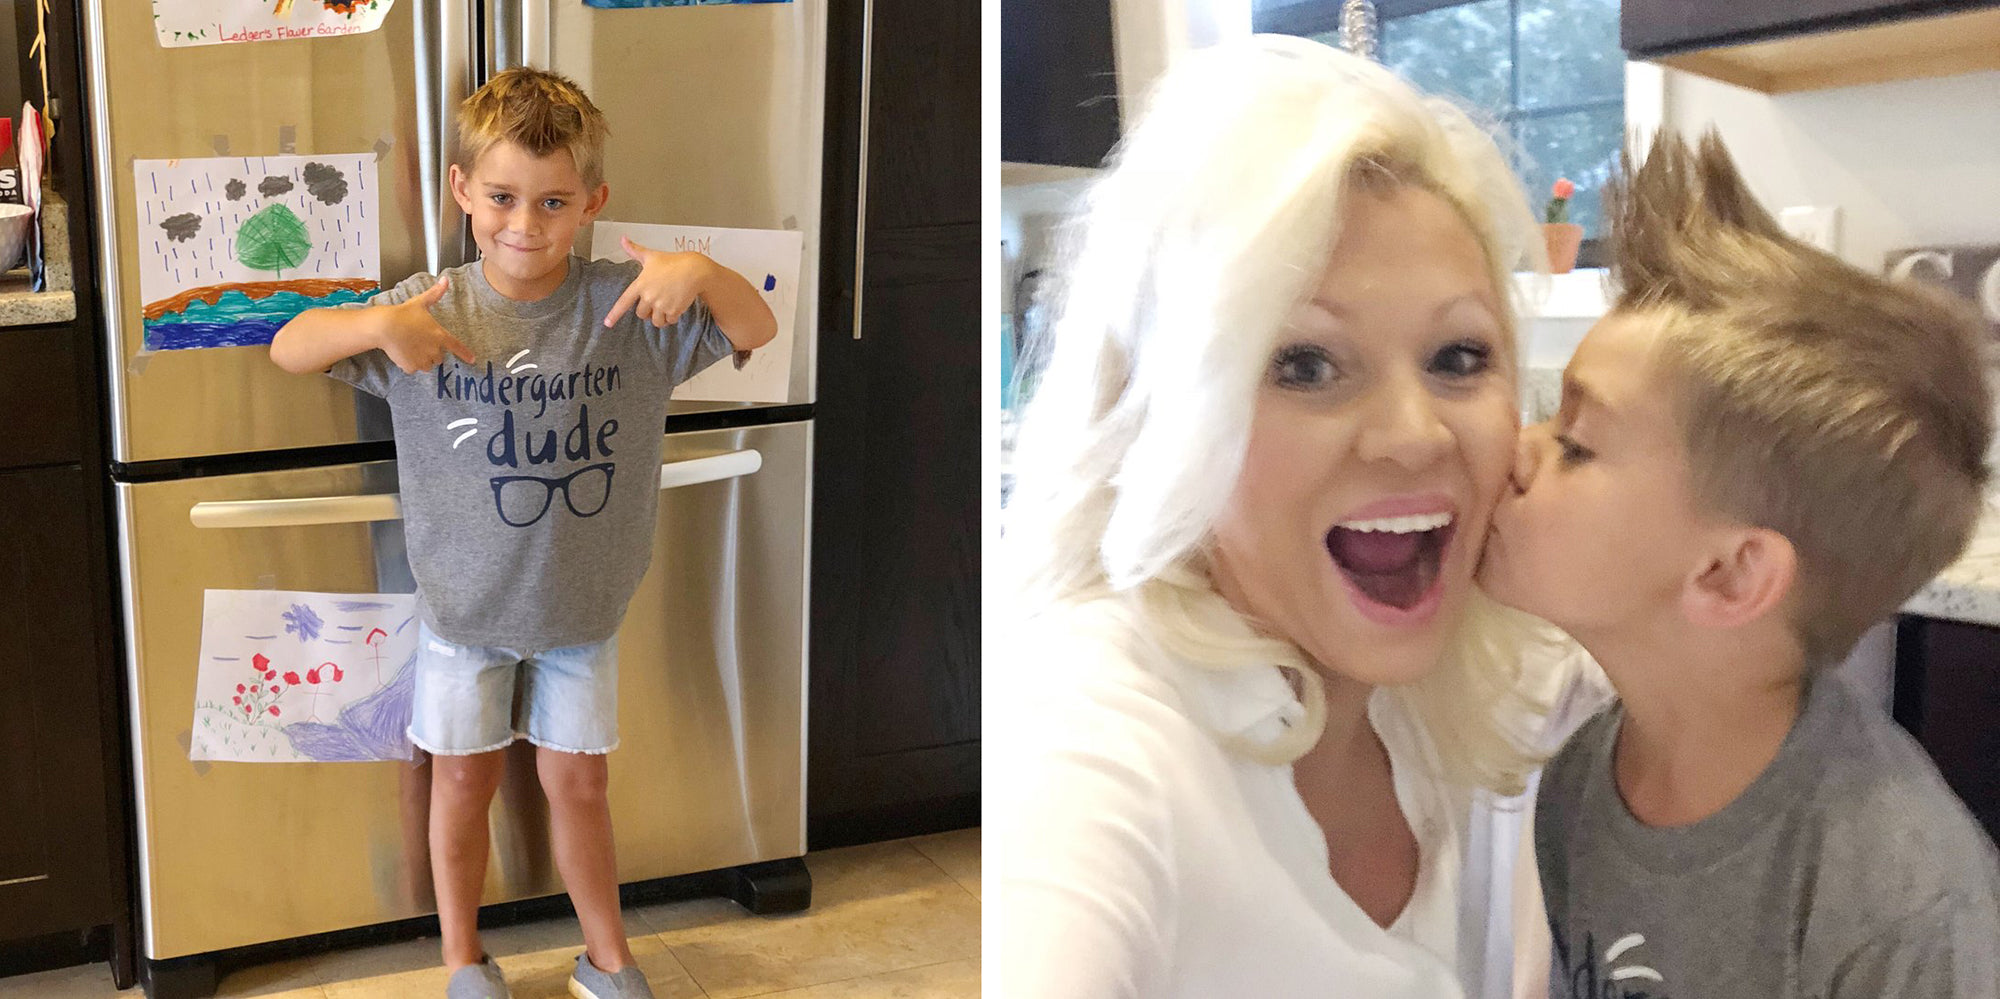 boss mom doesn't miss son's first day of kindergarten - balancing work and mom life